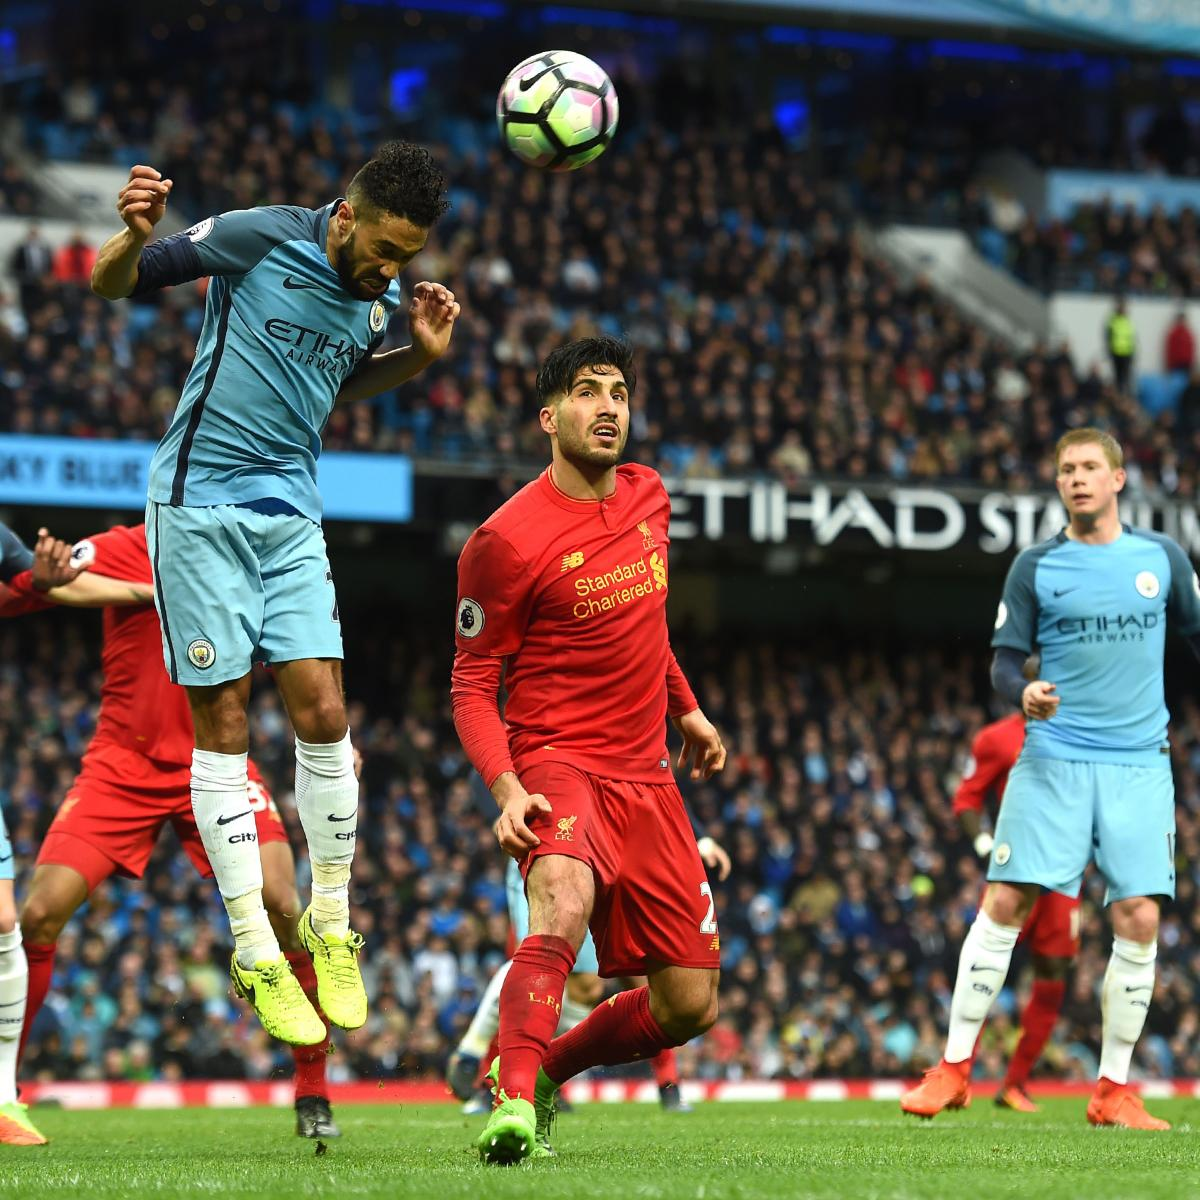 Chelsea Vs Tottenham Score Reaction From 2016 Premier: Manchester City Vs. Liverpool: Score And Reaction From